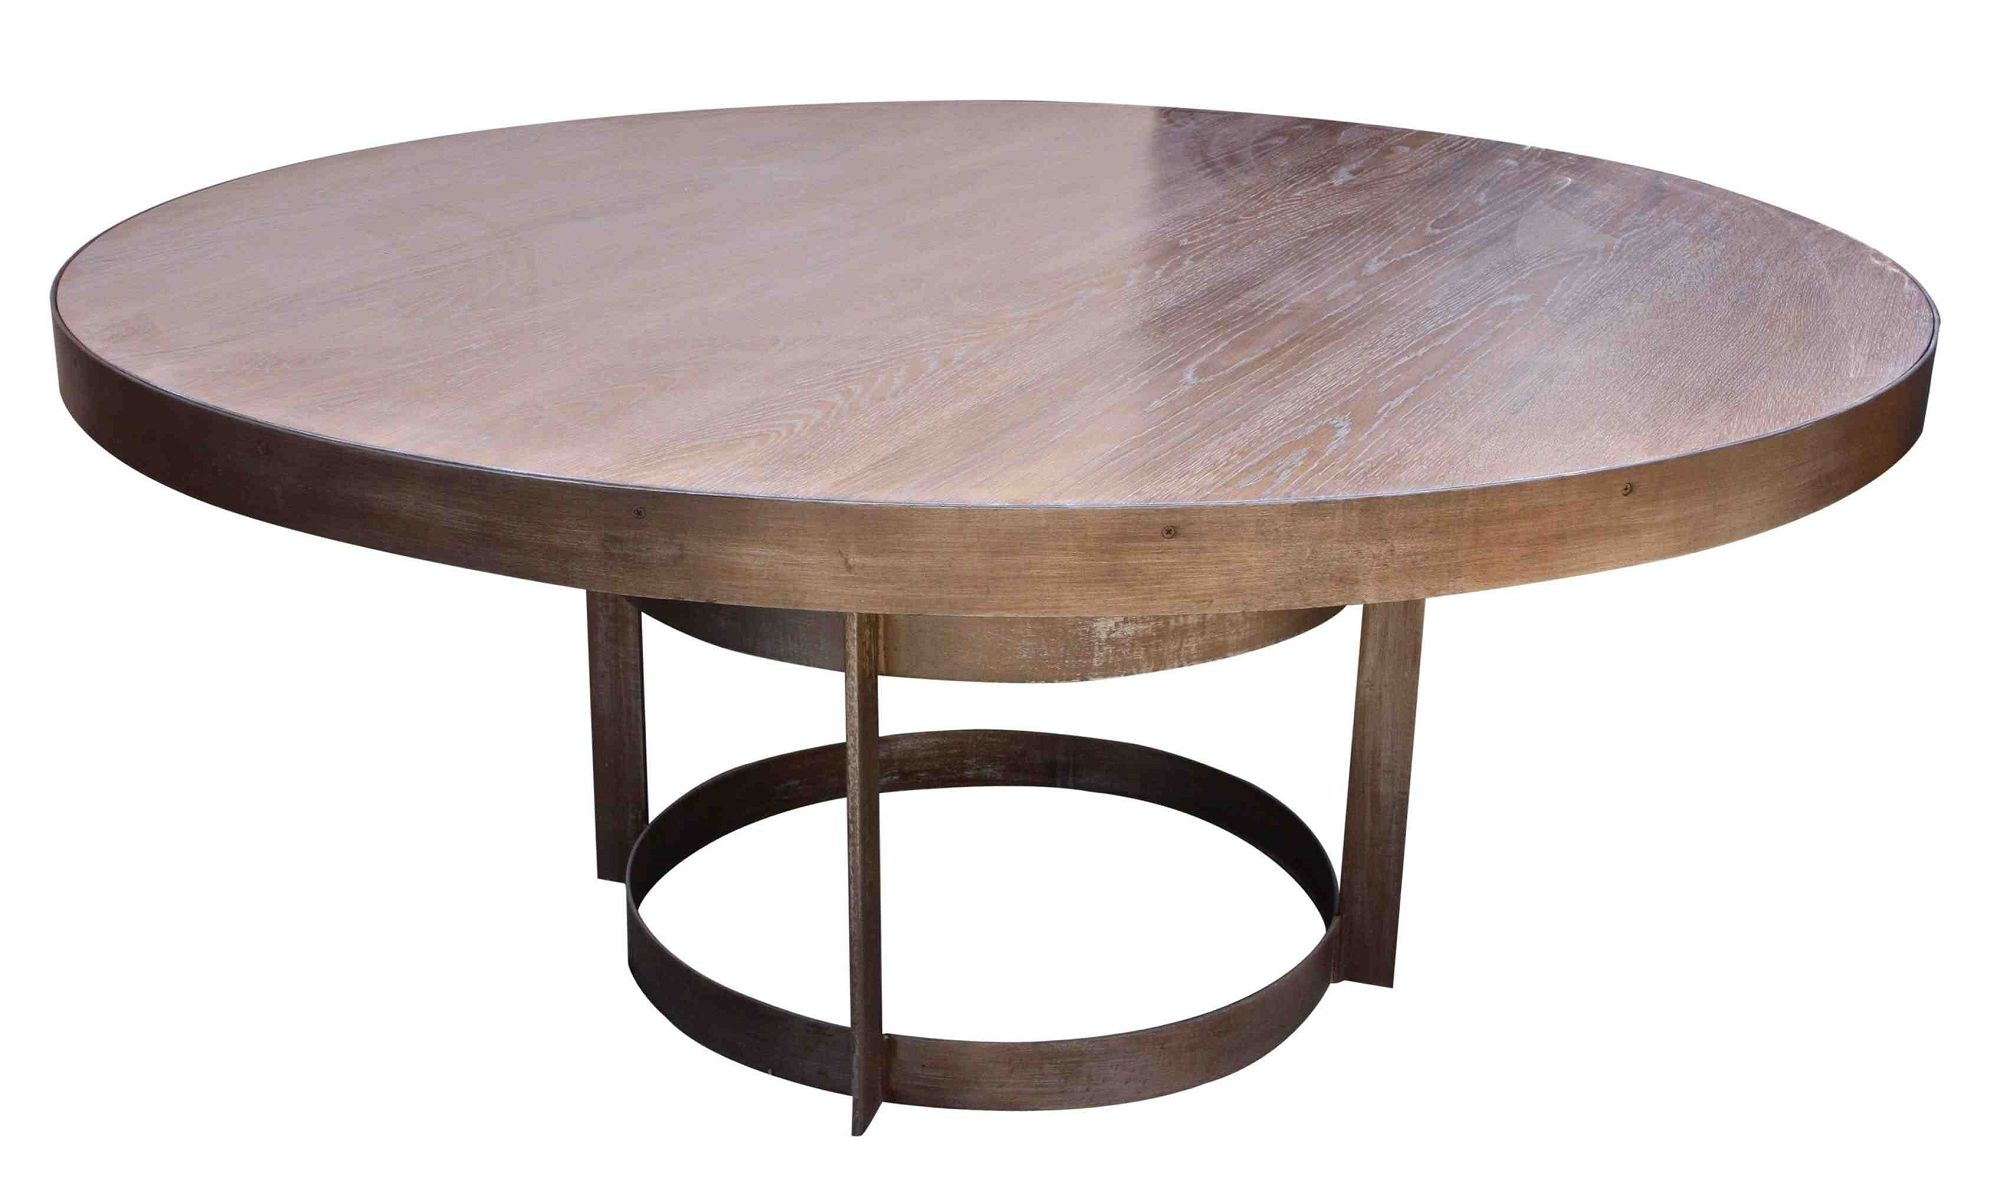 Contemporary Round Dining Room Tables Extraordinary Great Solution For Additional Guest Using Expandable Round Dining Design Ideas